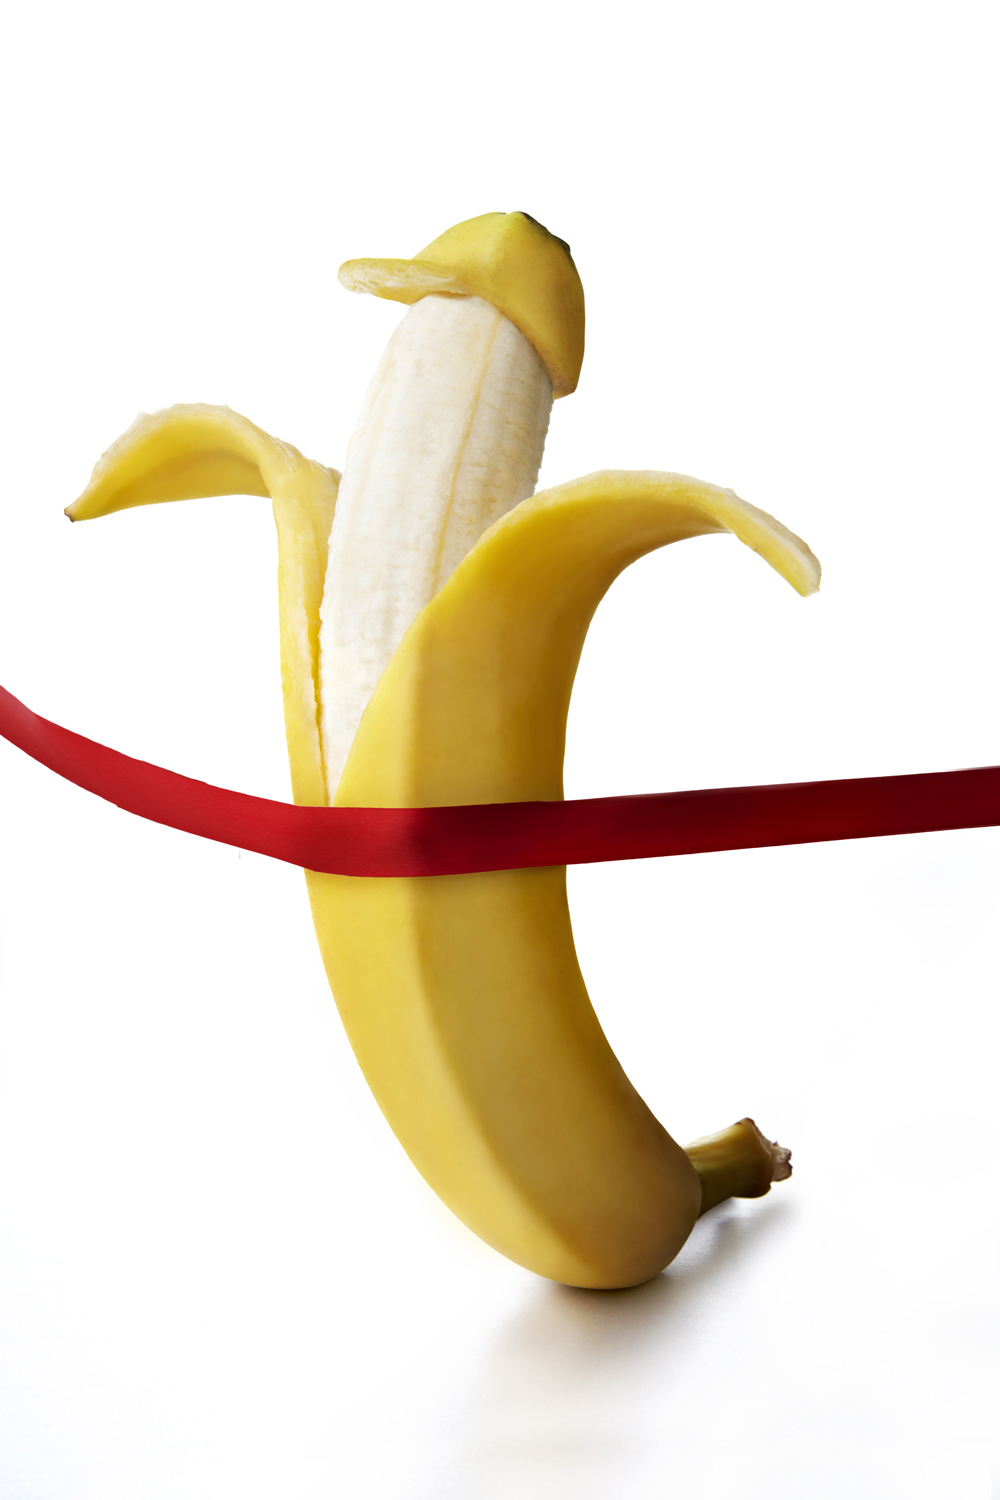 Men's Health: Banana